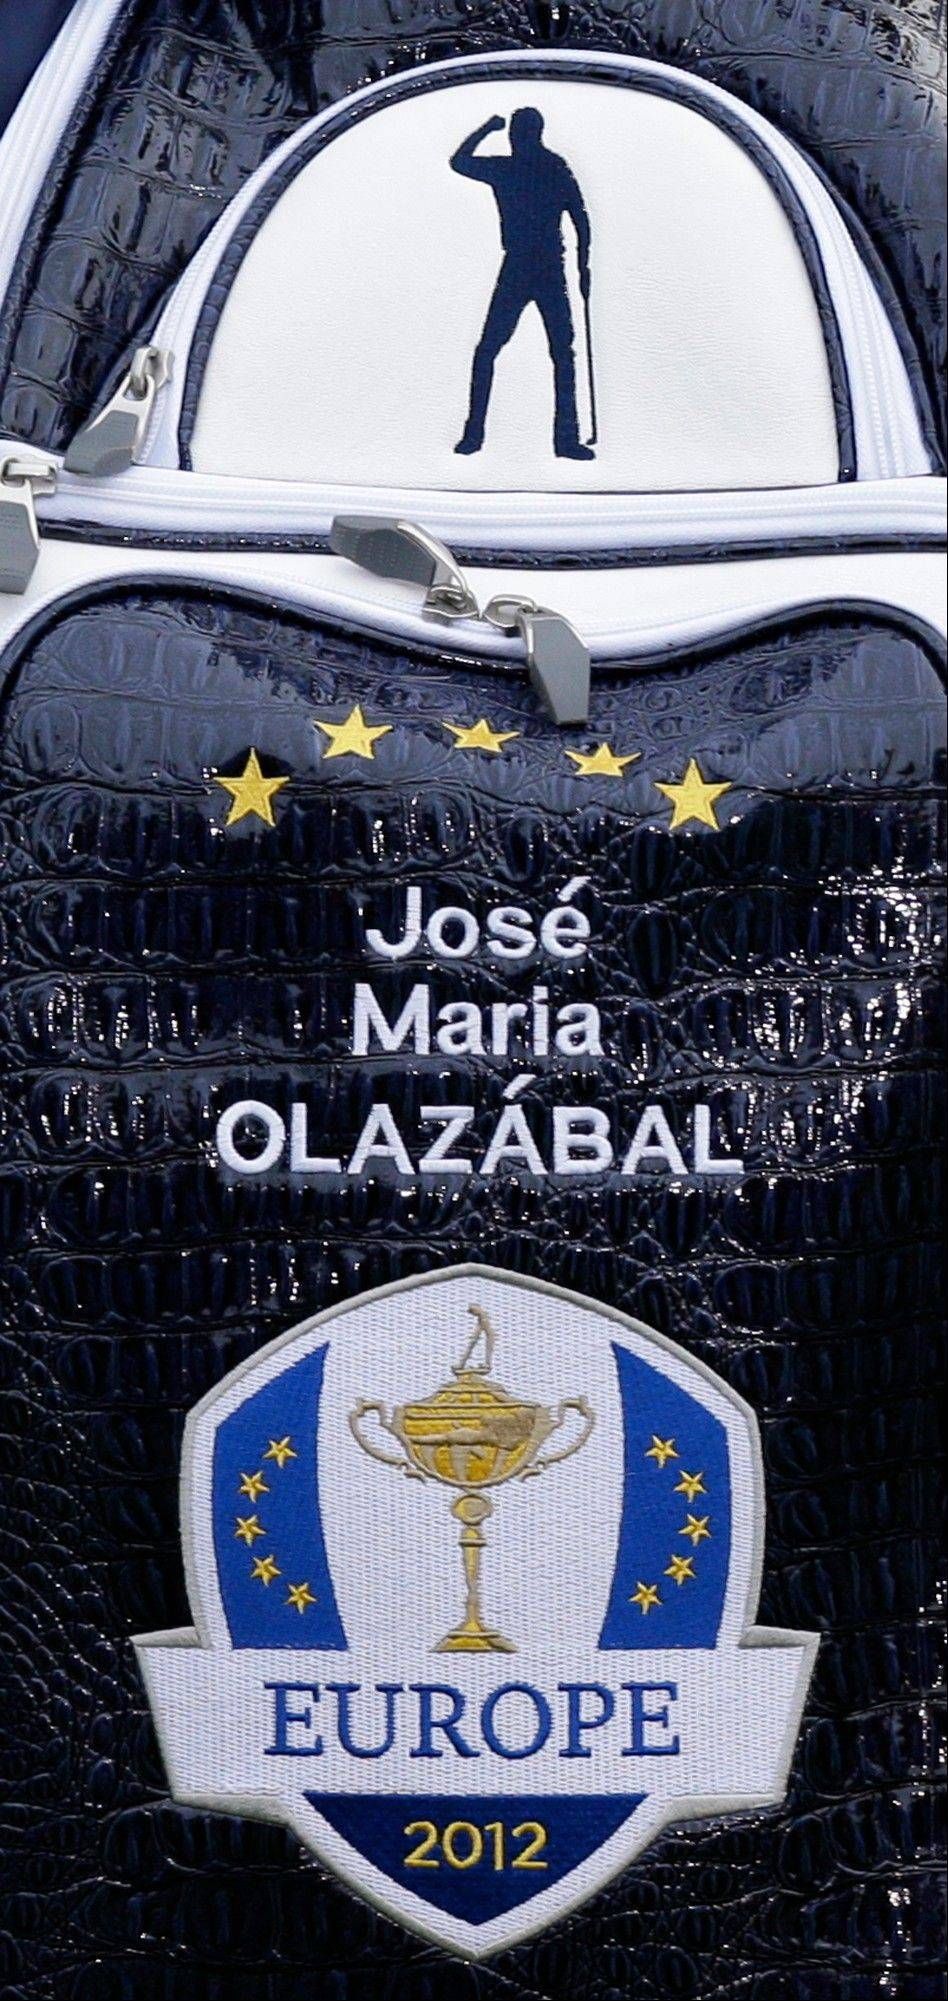 An image of Seve Ballesteros is seen on the bag of European team captain Jose Maria Olazabal Tuesday during practice for the Ryder Cup.